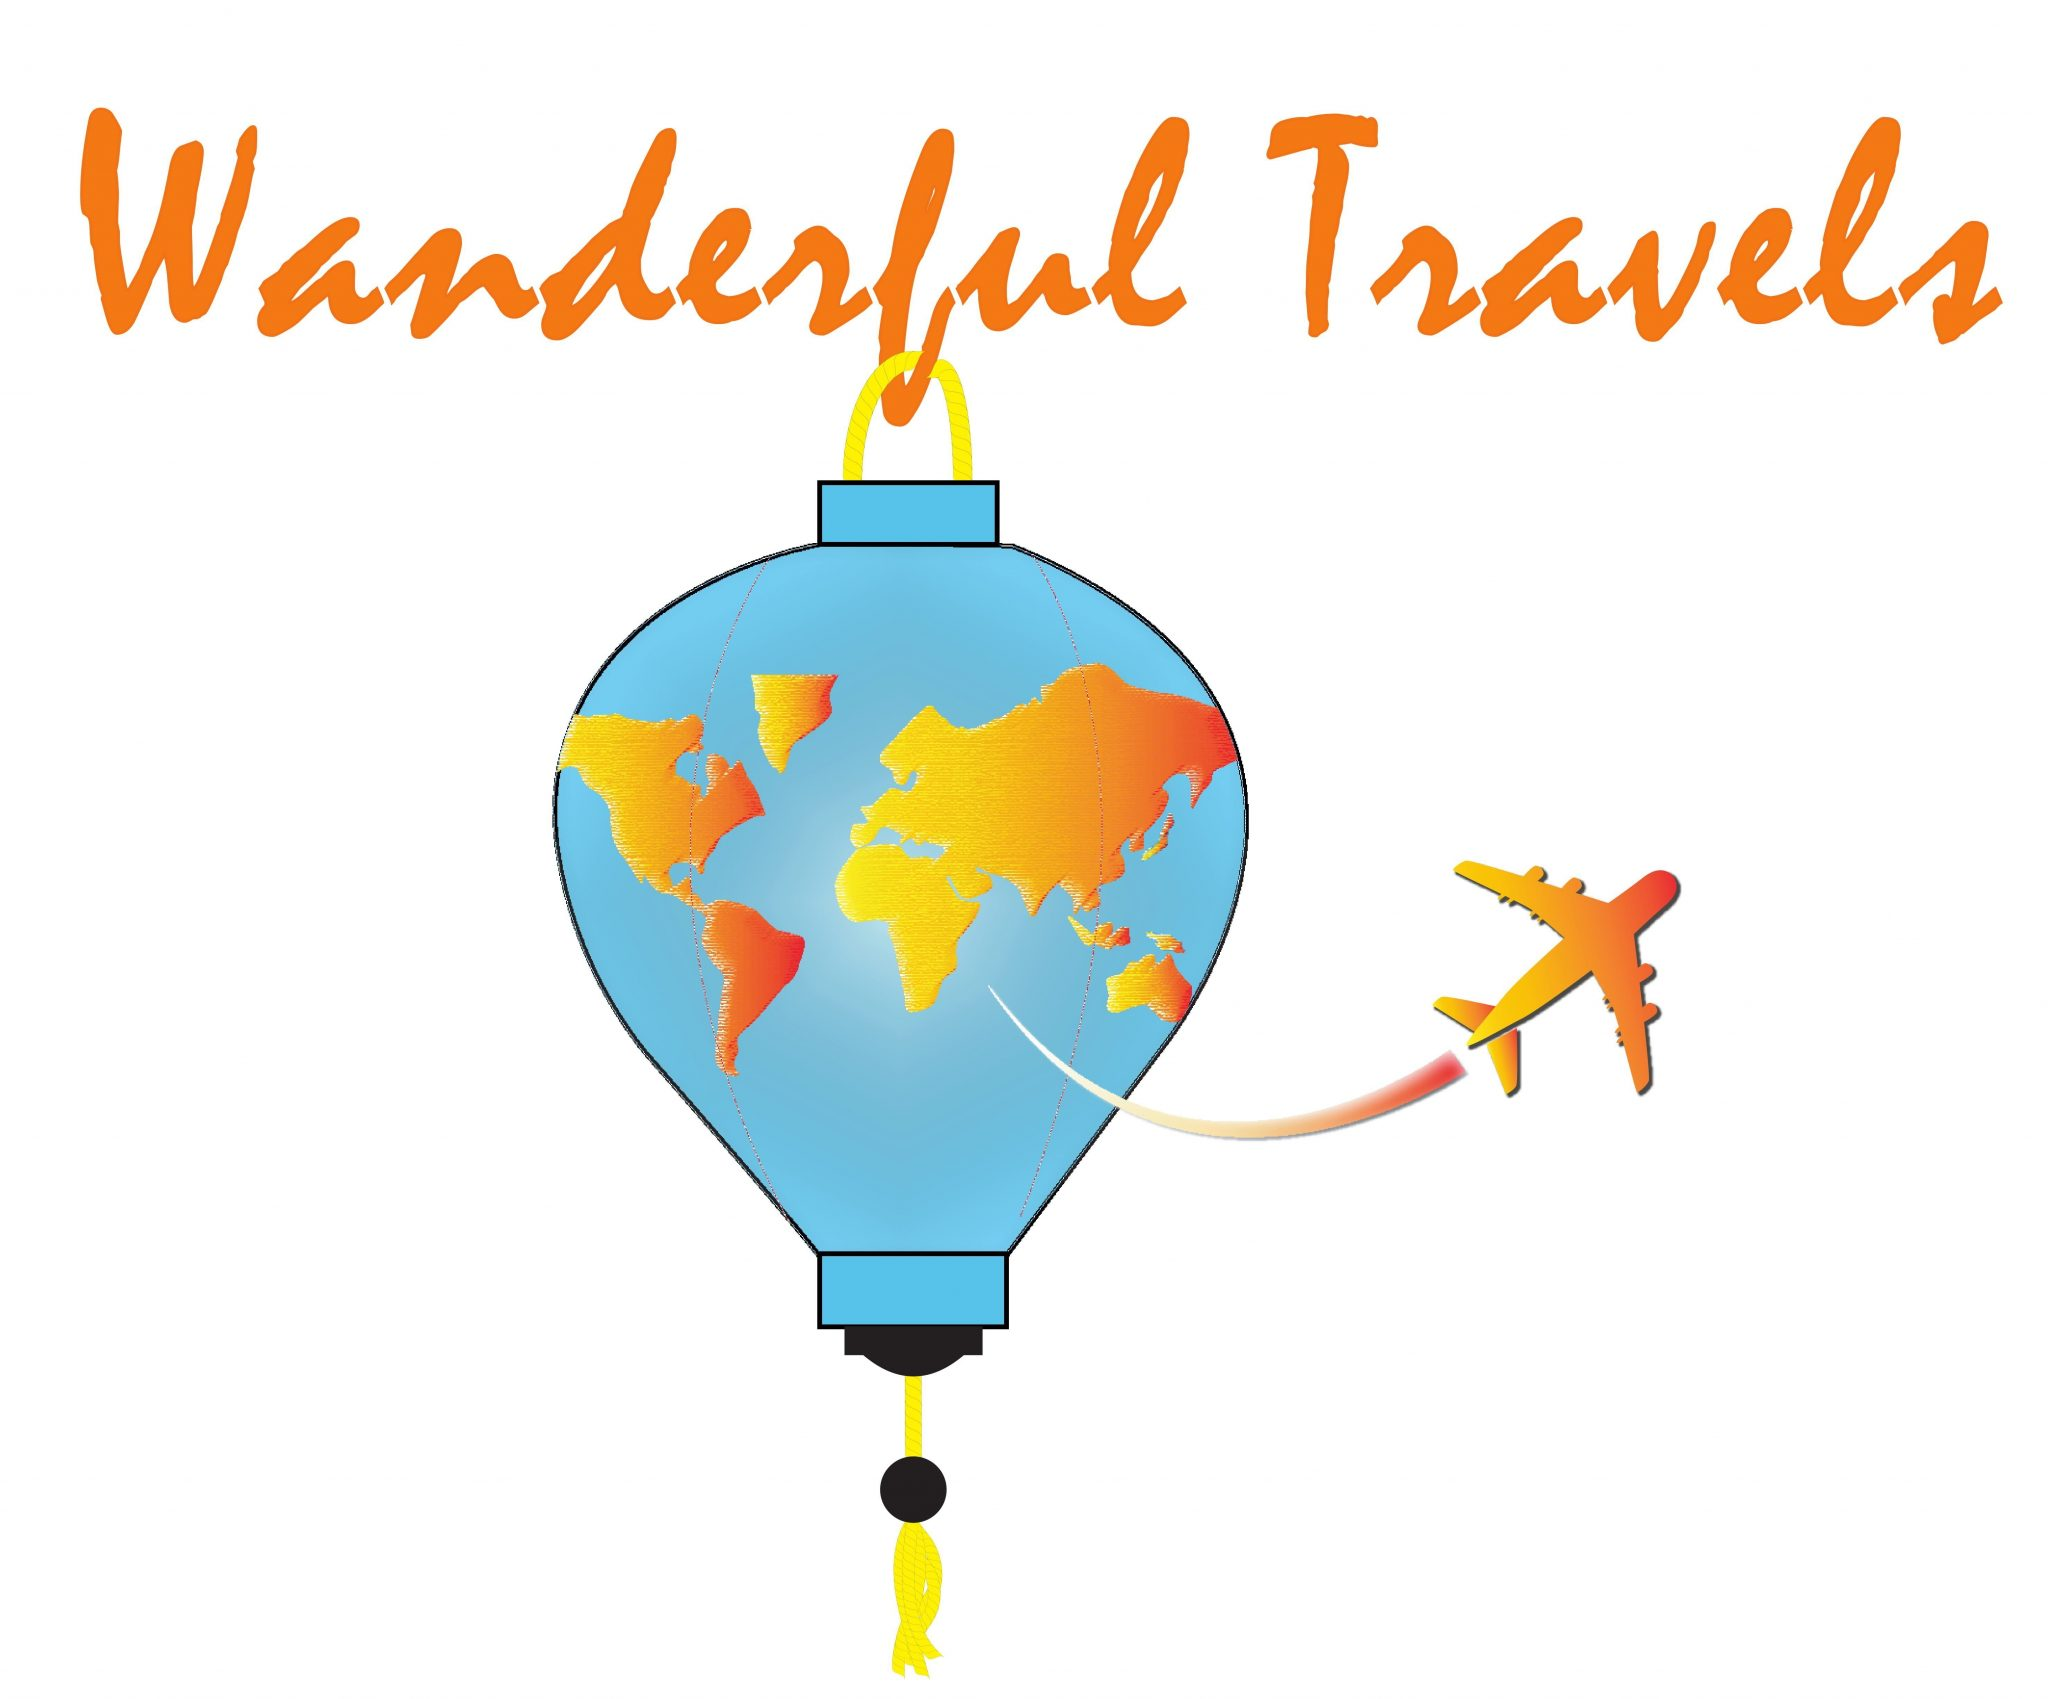 Wanderful Travels